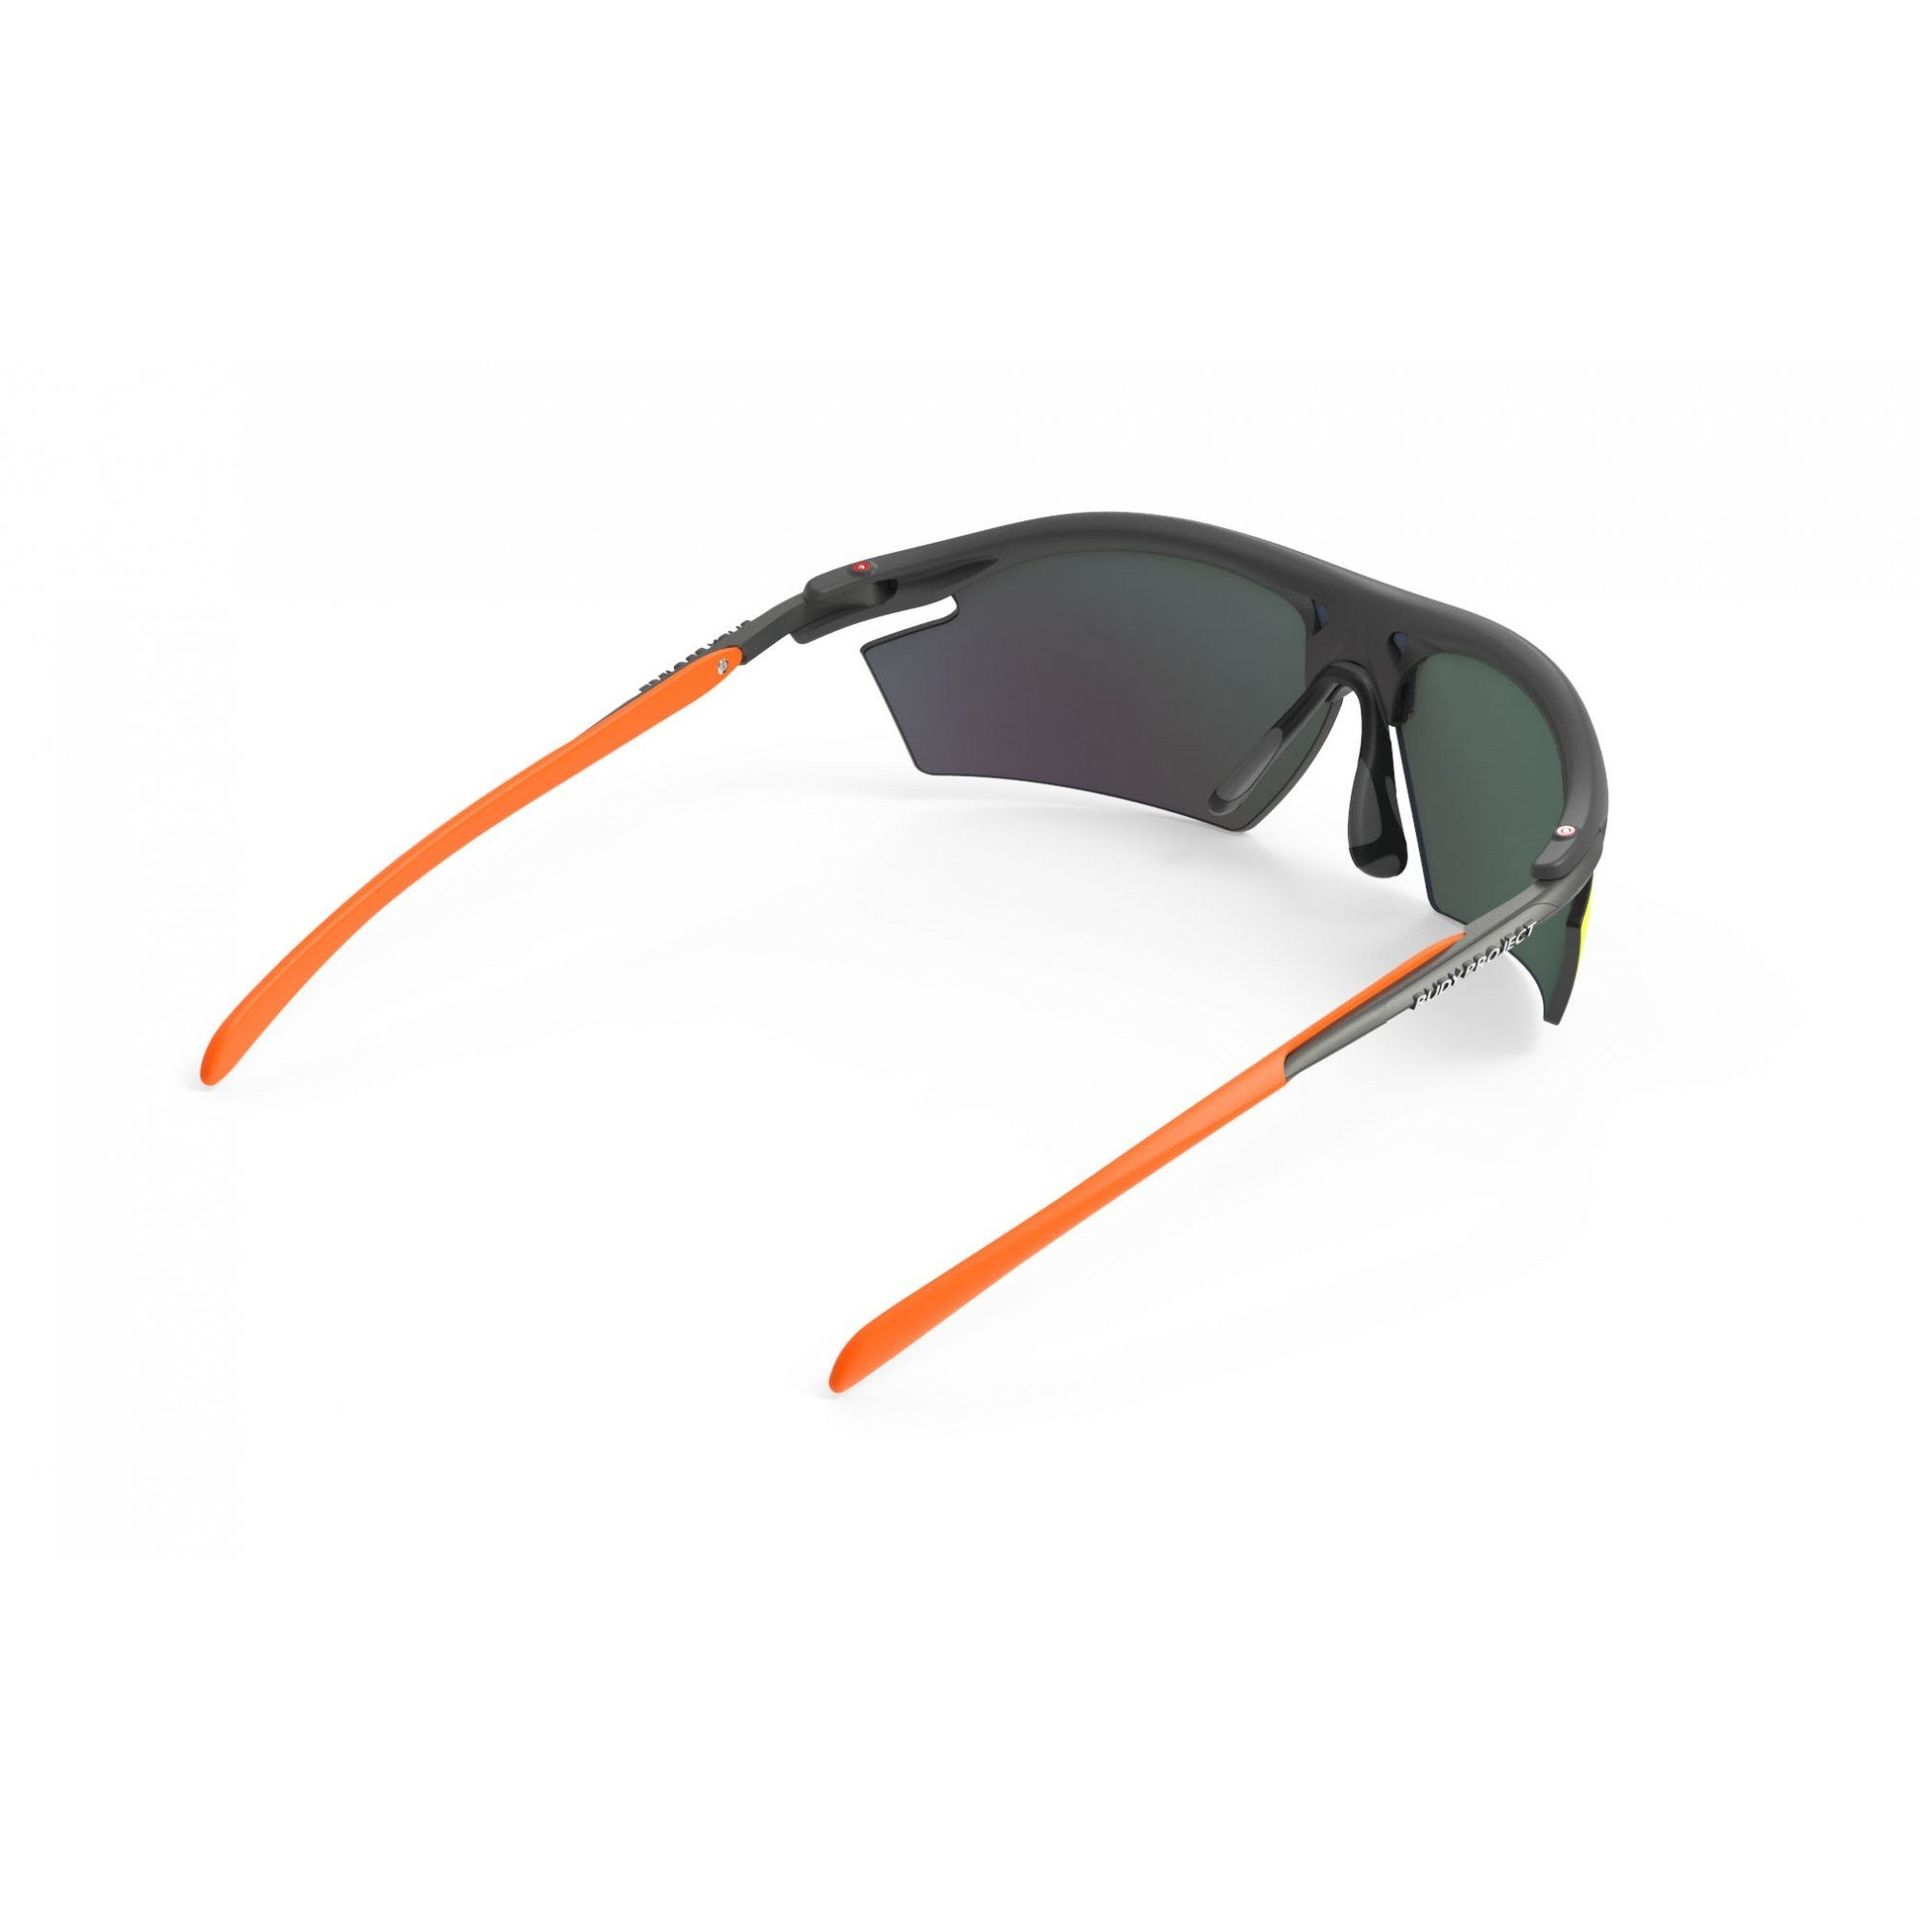 OKULARY RUDY PROJECT RYDON GRAPHITE|ORANGE + ML ORANGE SP534098 5